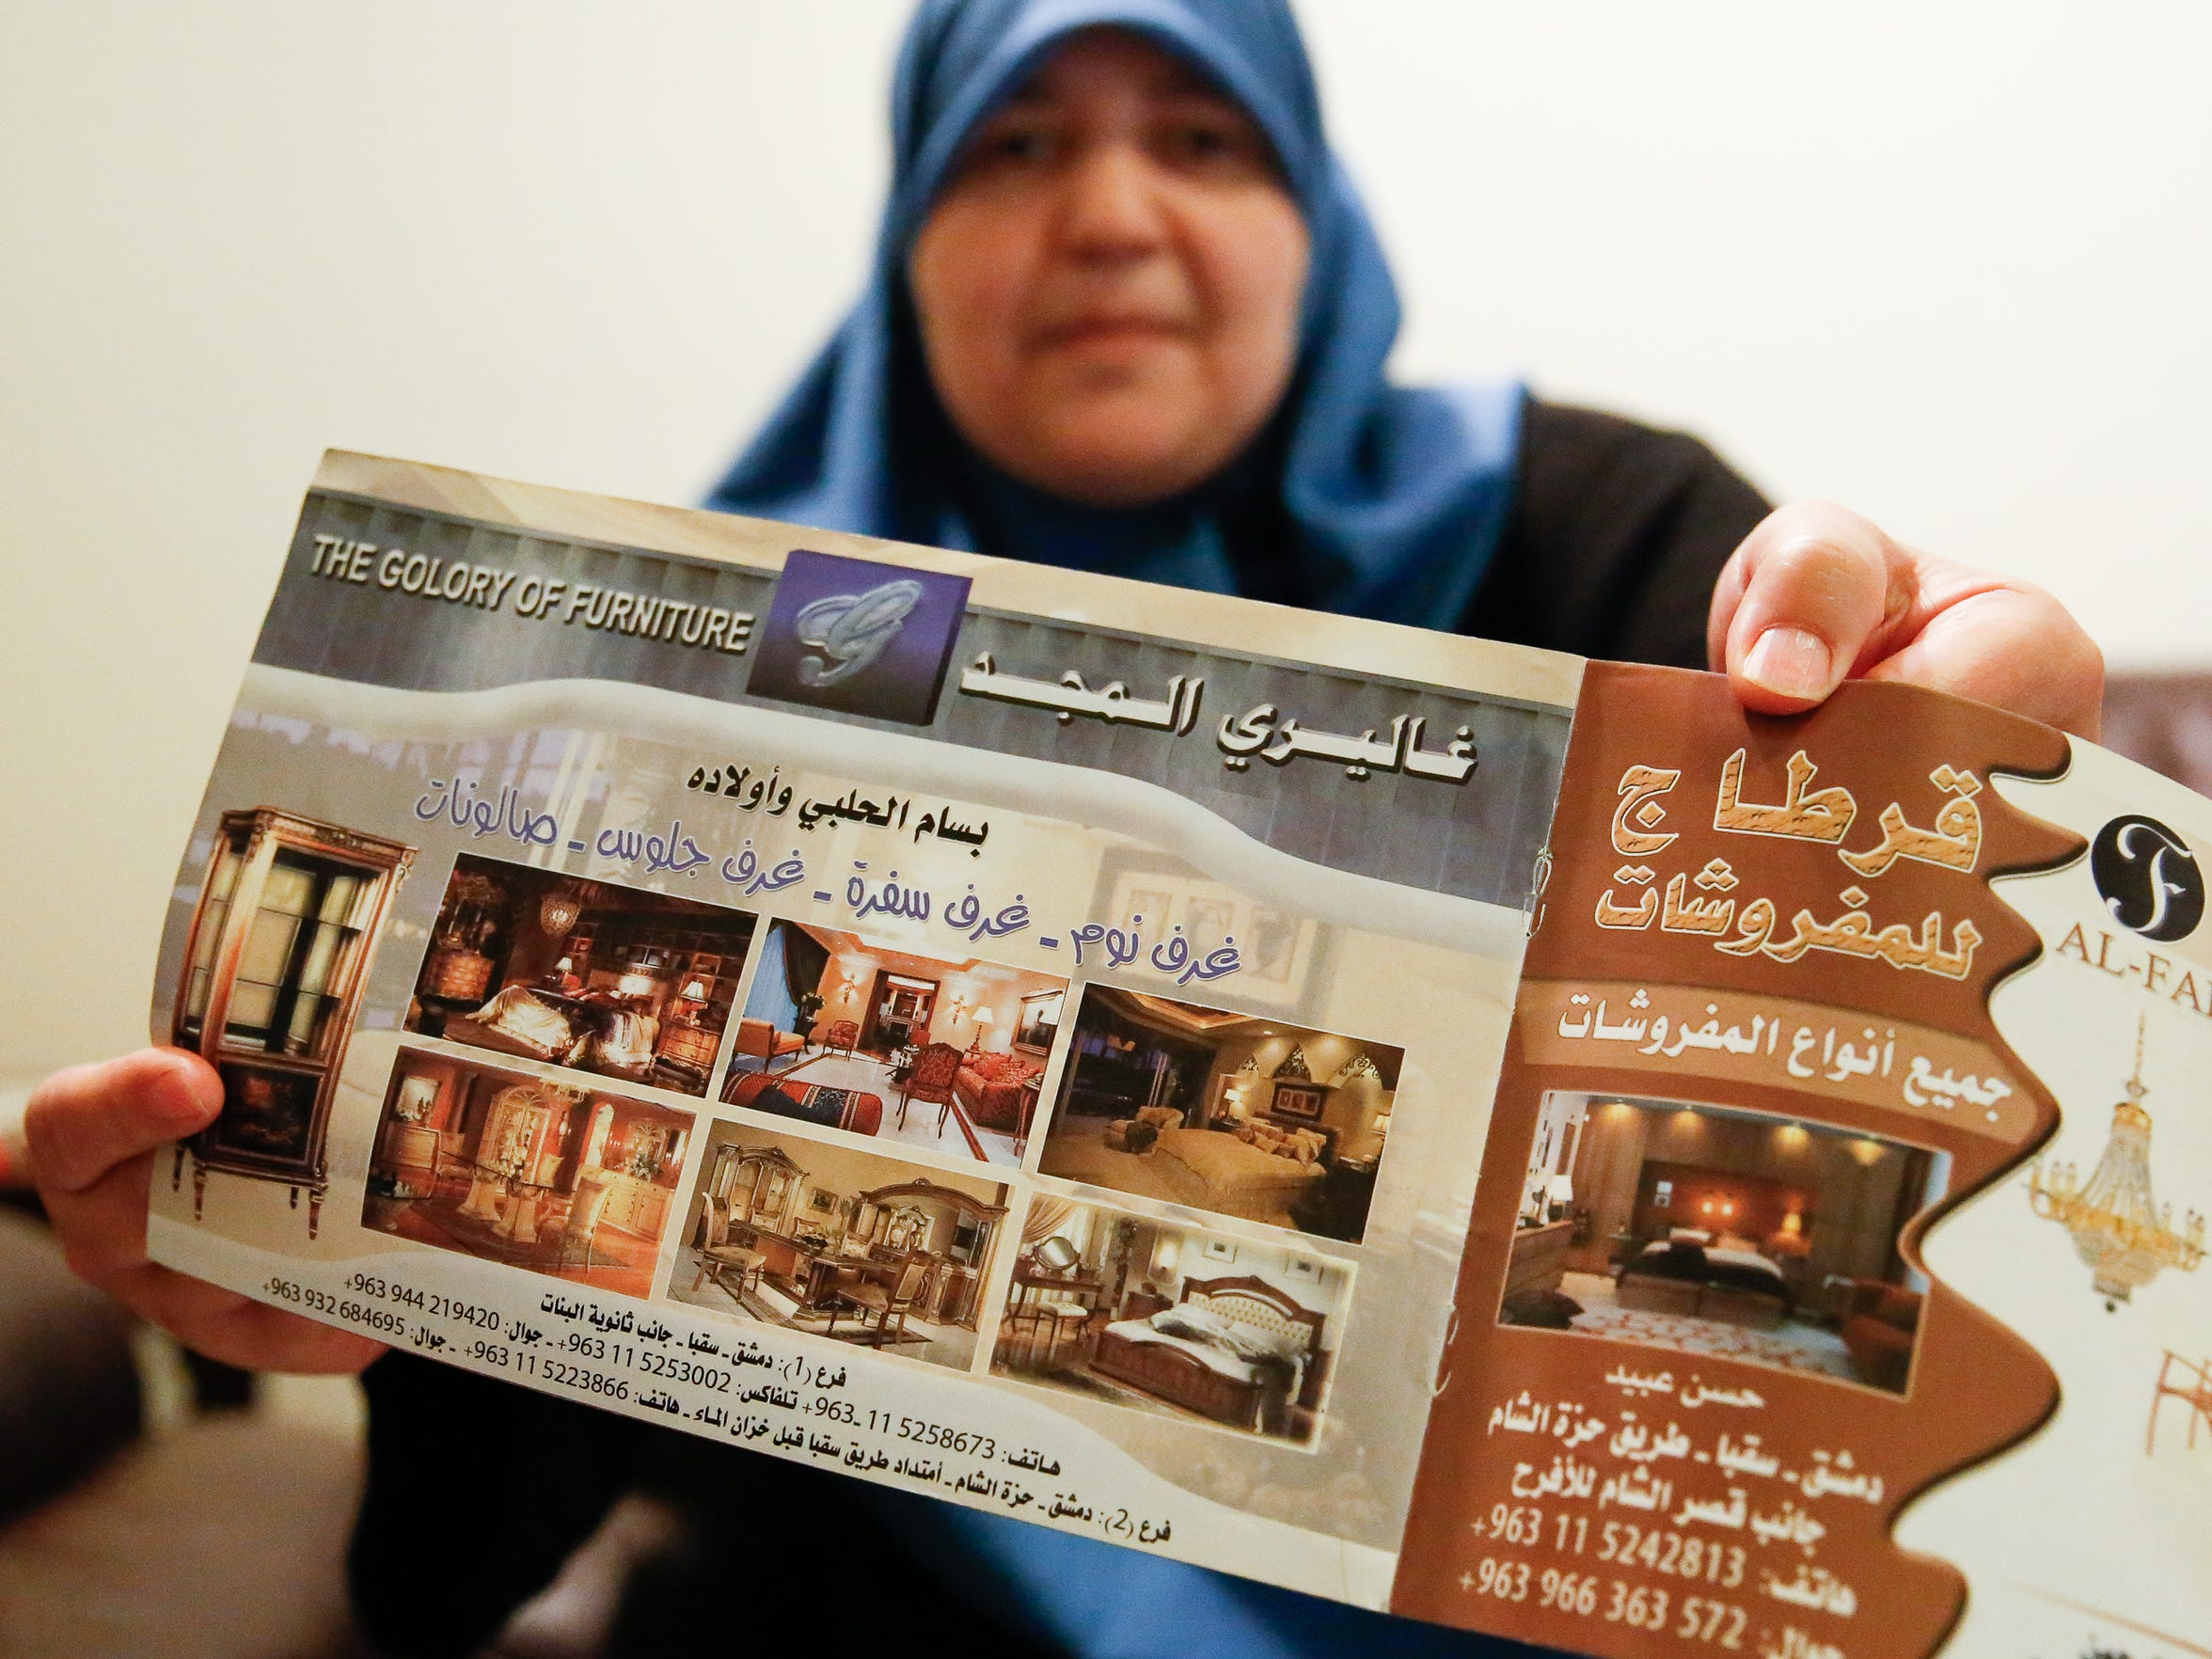 Osaima Alhalabi shows an old advertisement for her family's business back in Damascus, Syria.